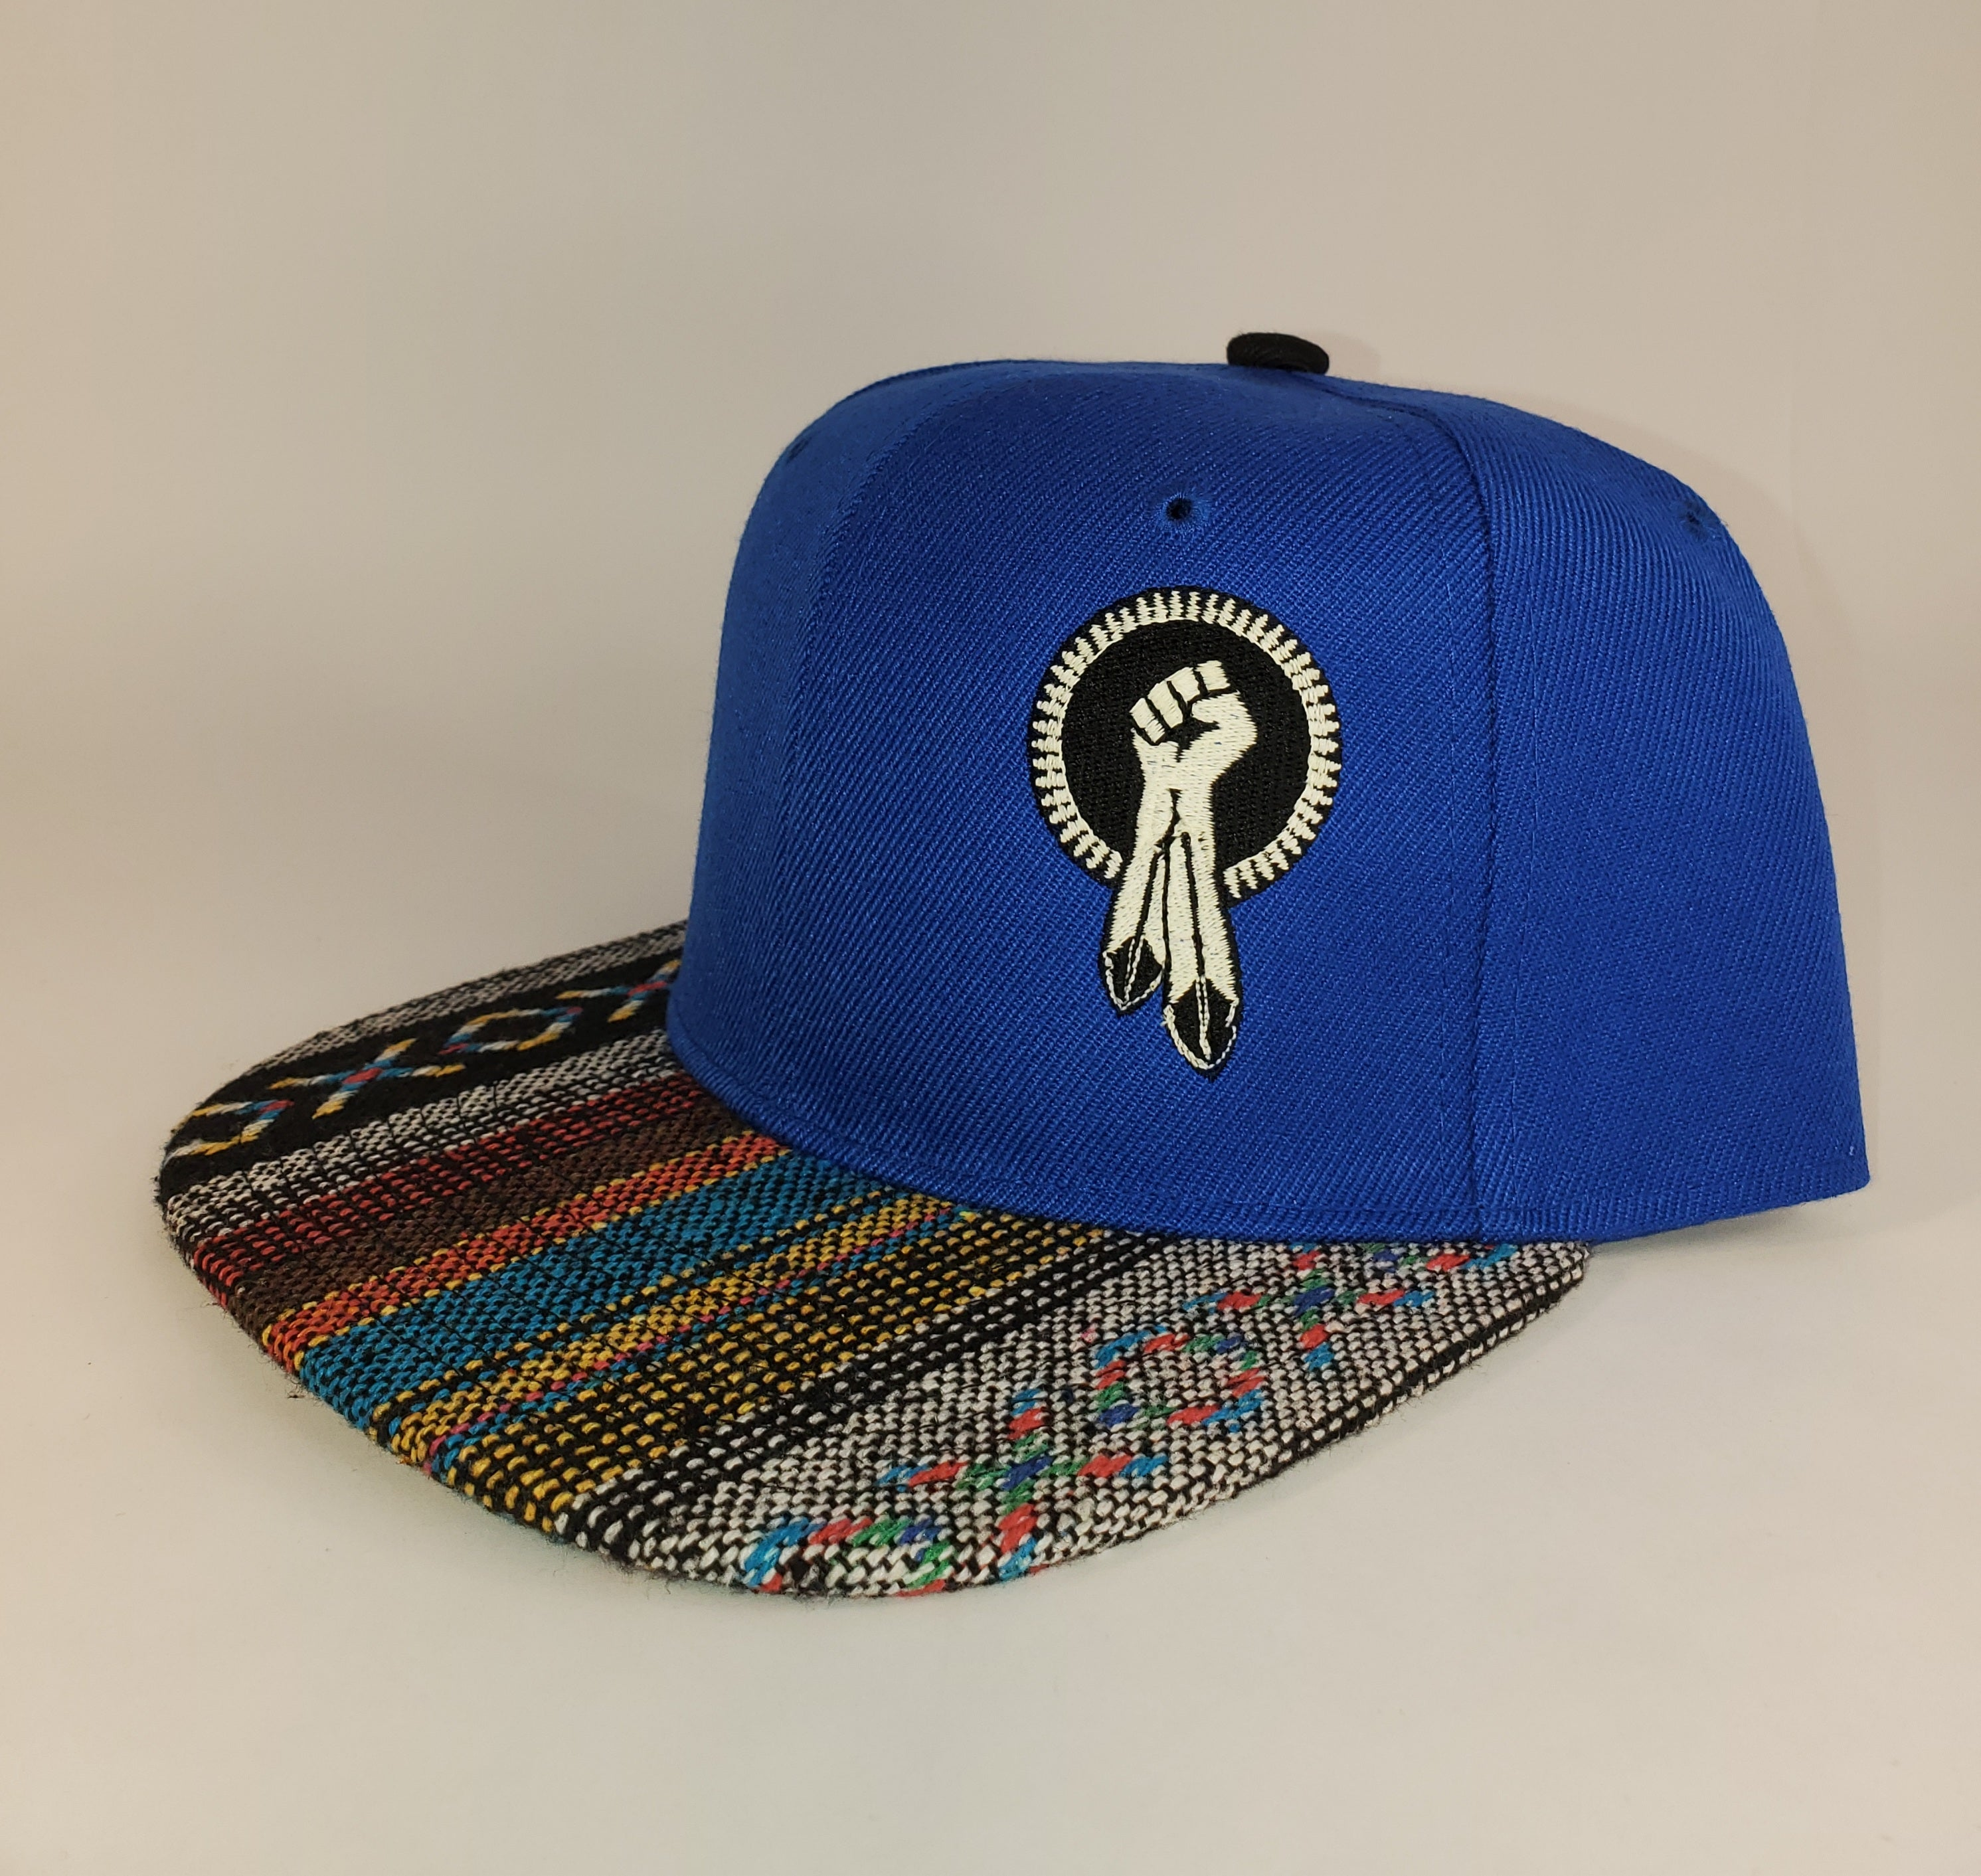 N8V MOVEMENT cap embroidered glow in the dark blue snapback